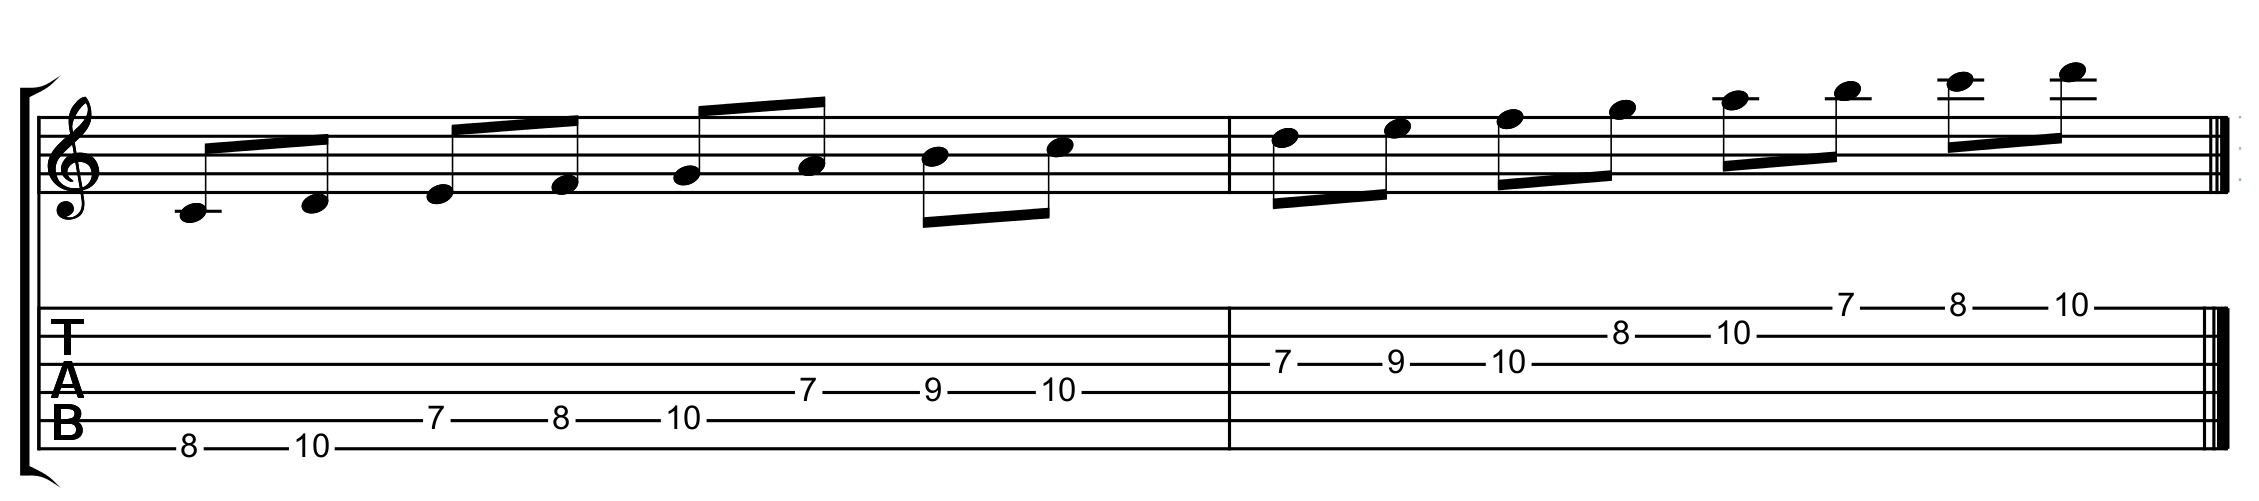 notes of the C major scale